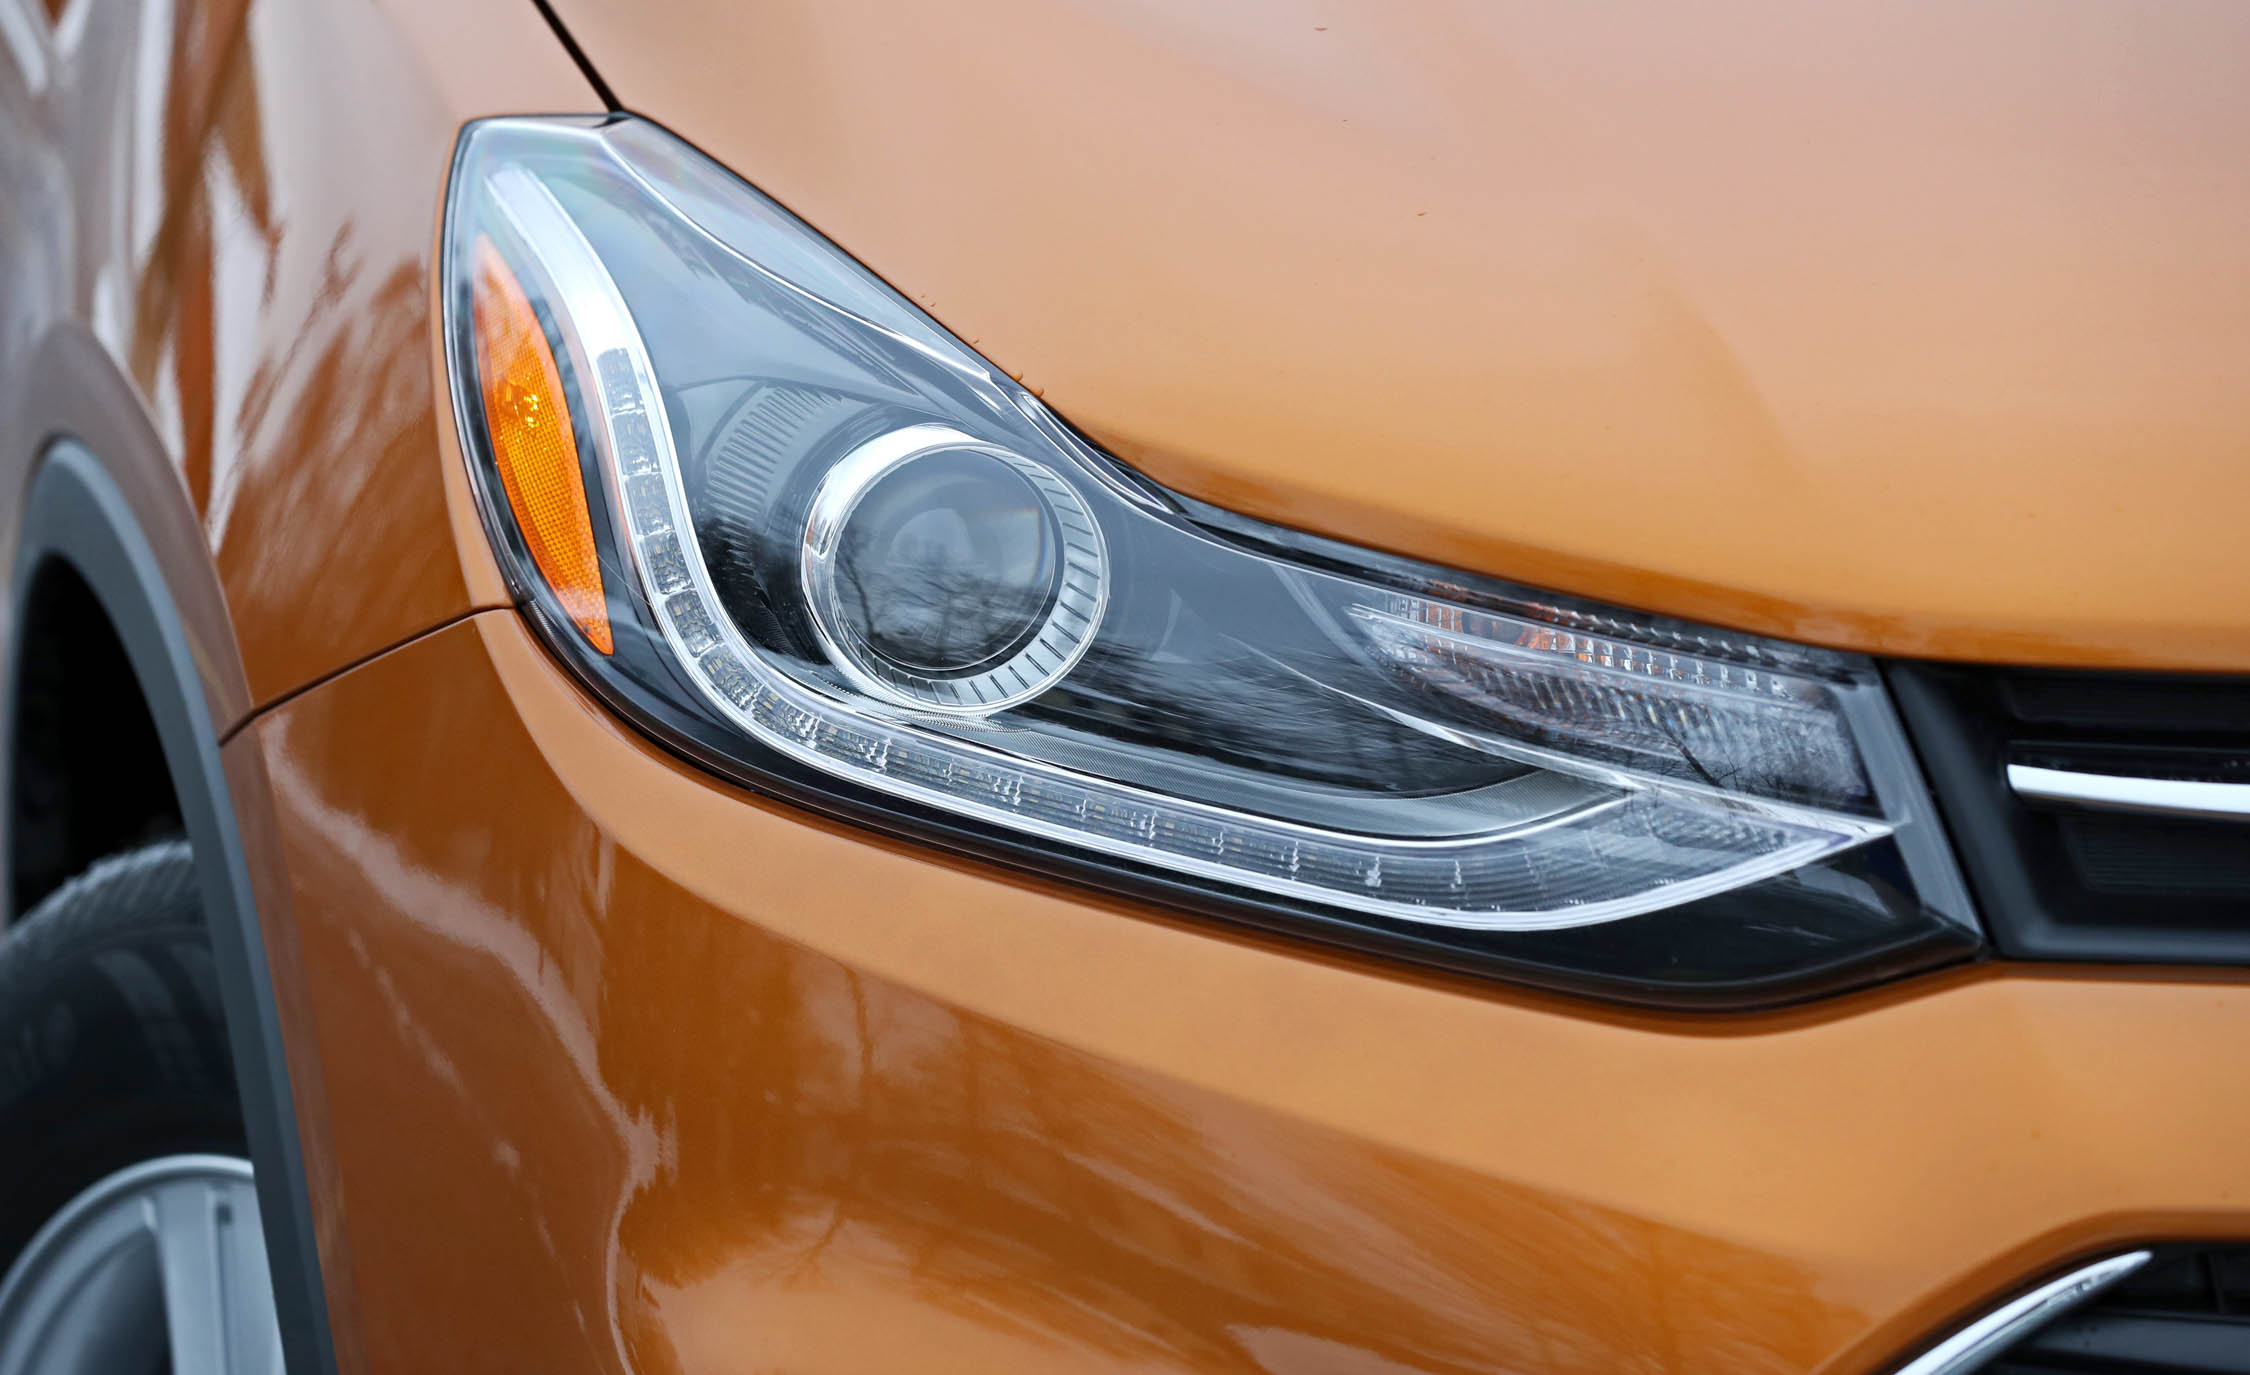 2017 Chevrolet Trax Exterior View Headlight (View 39 of 47)